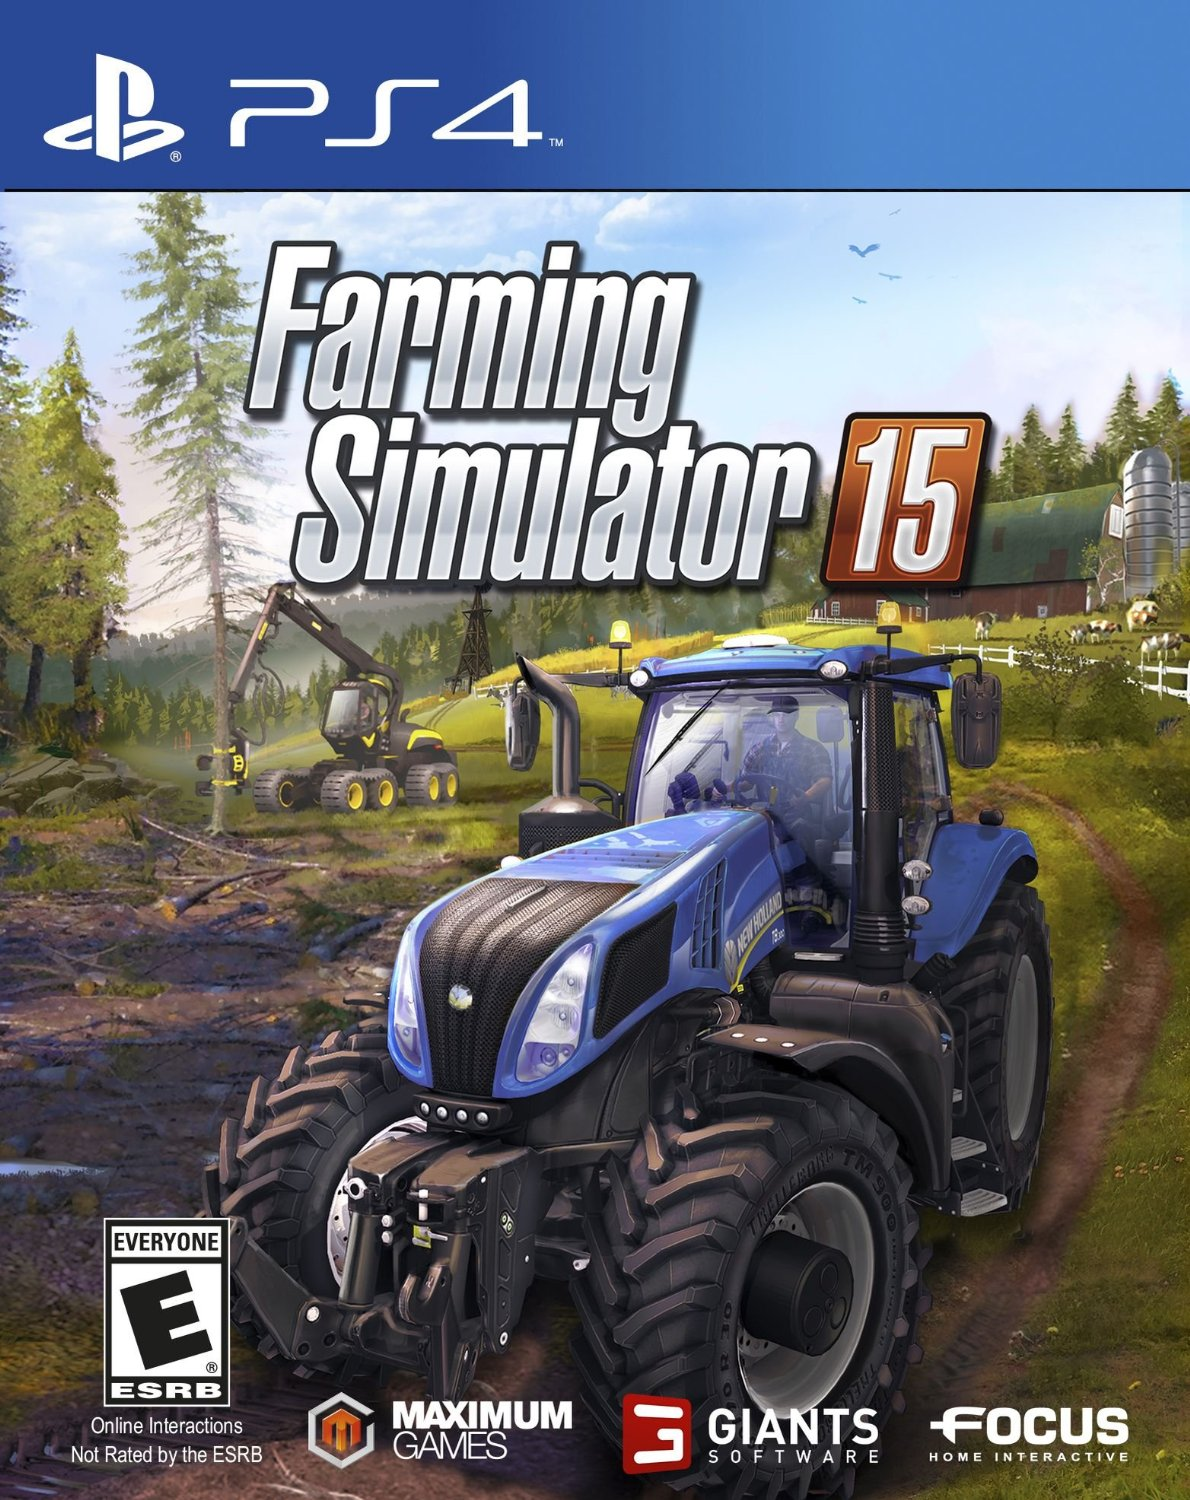 PS4 Farming Simulator 15 (PlayStation 4)